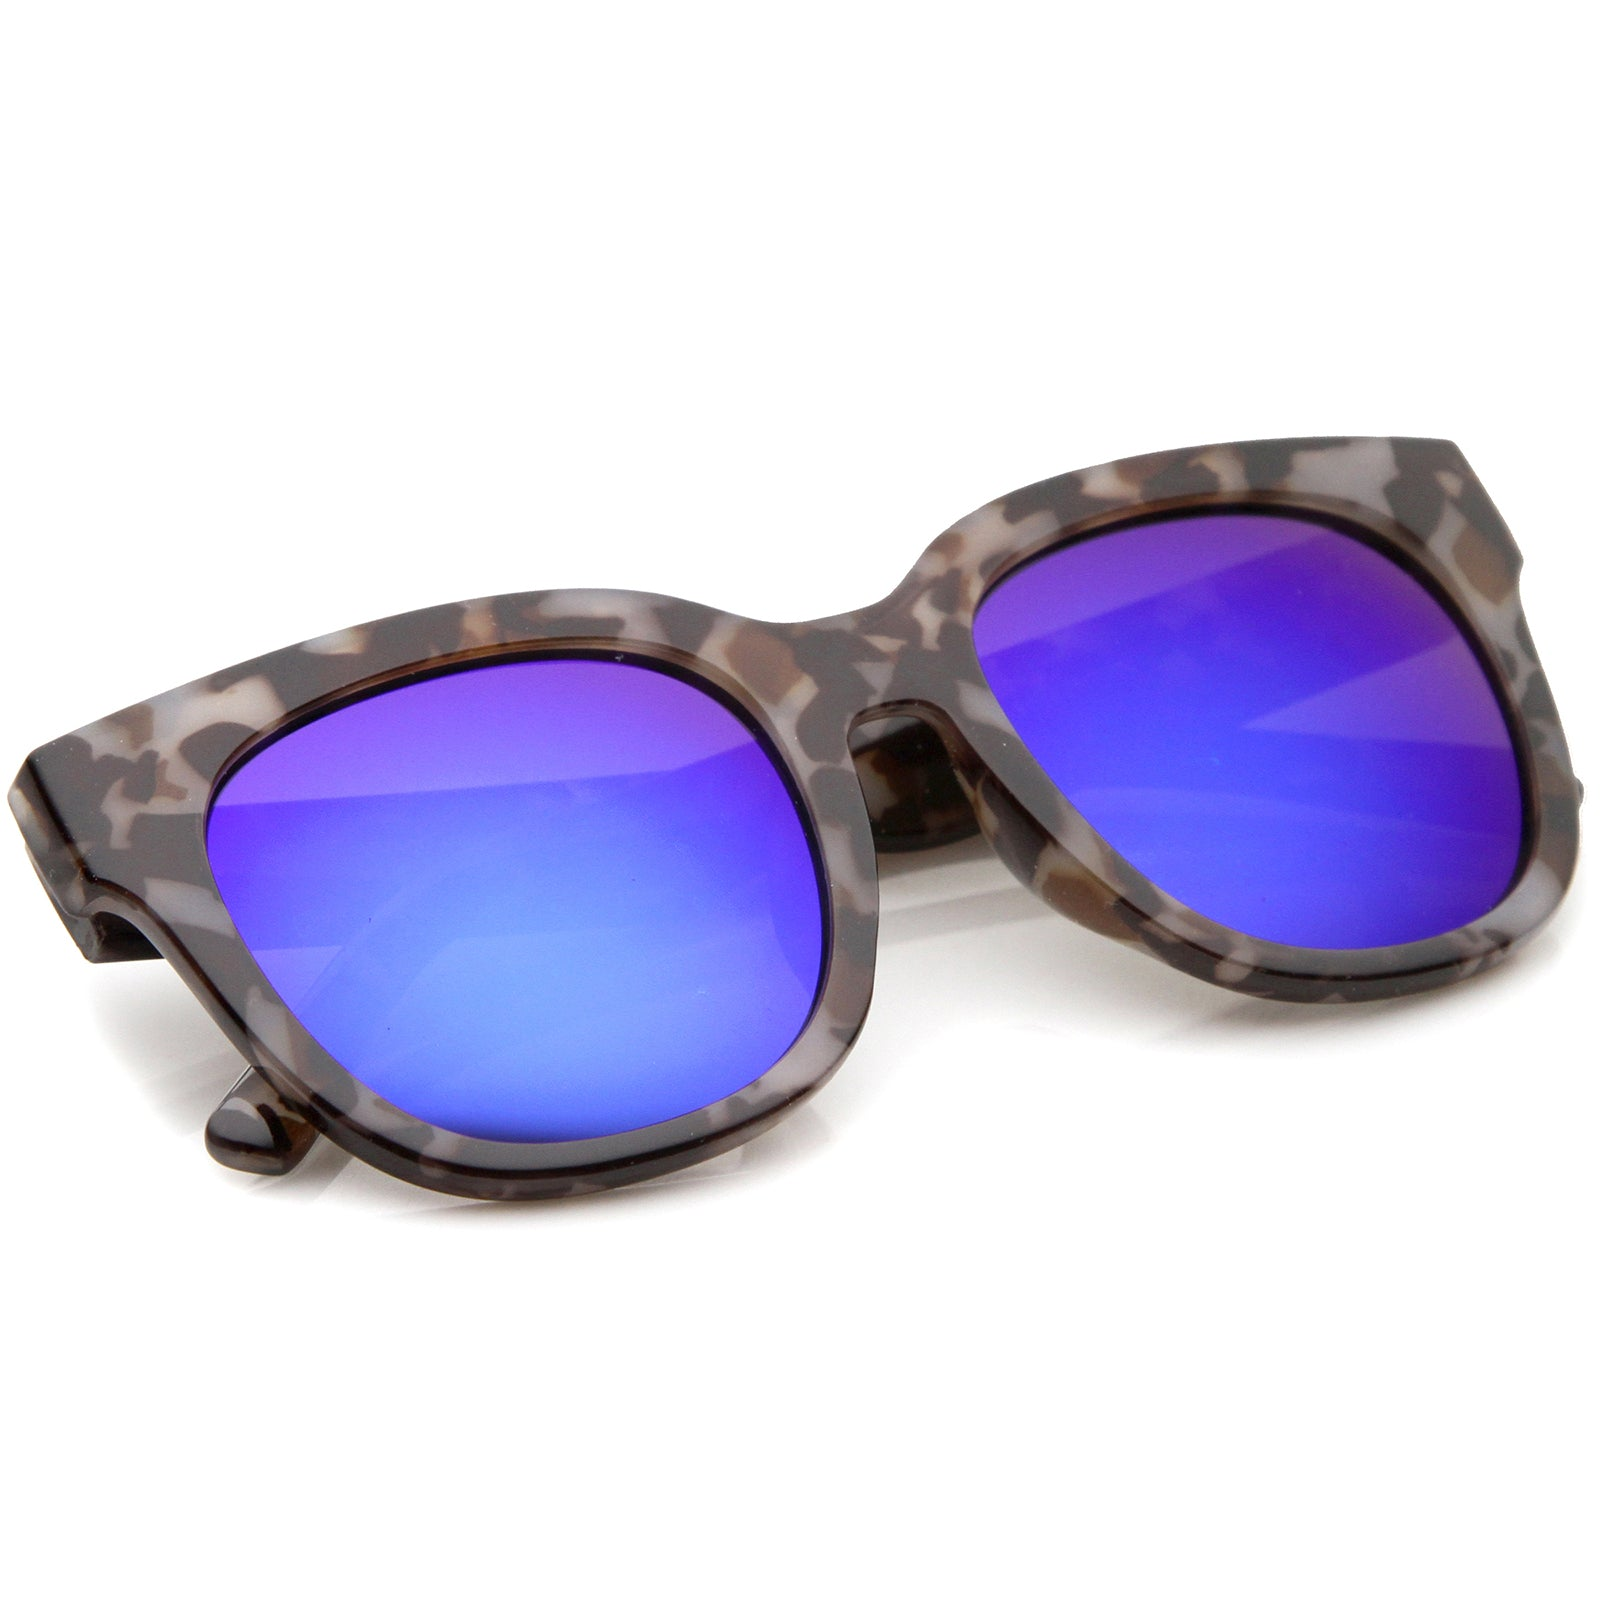 Womens Cat Eye Sunglasses With UV400 Protected Mirrored Lens - sunglass.la - 4